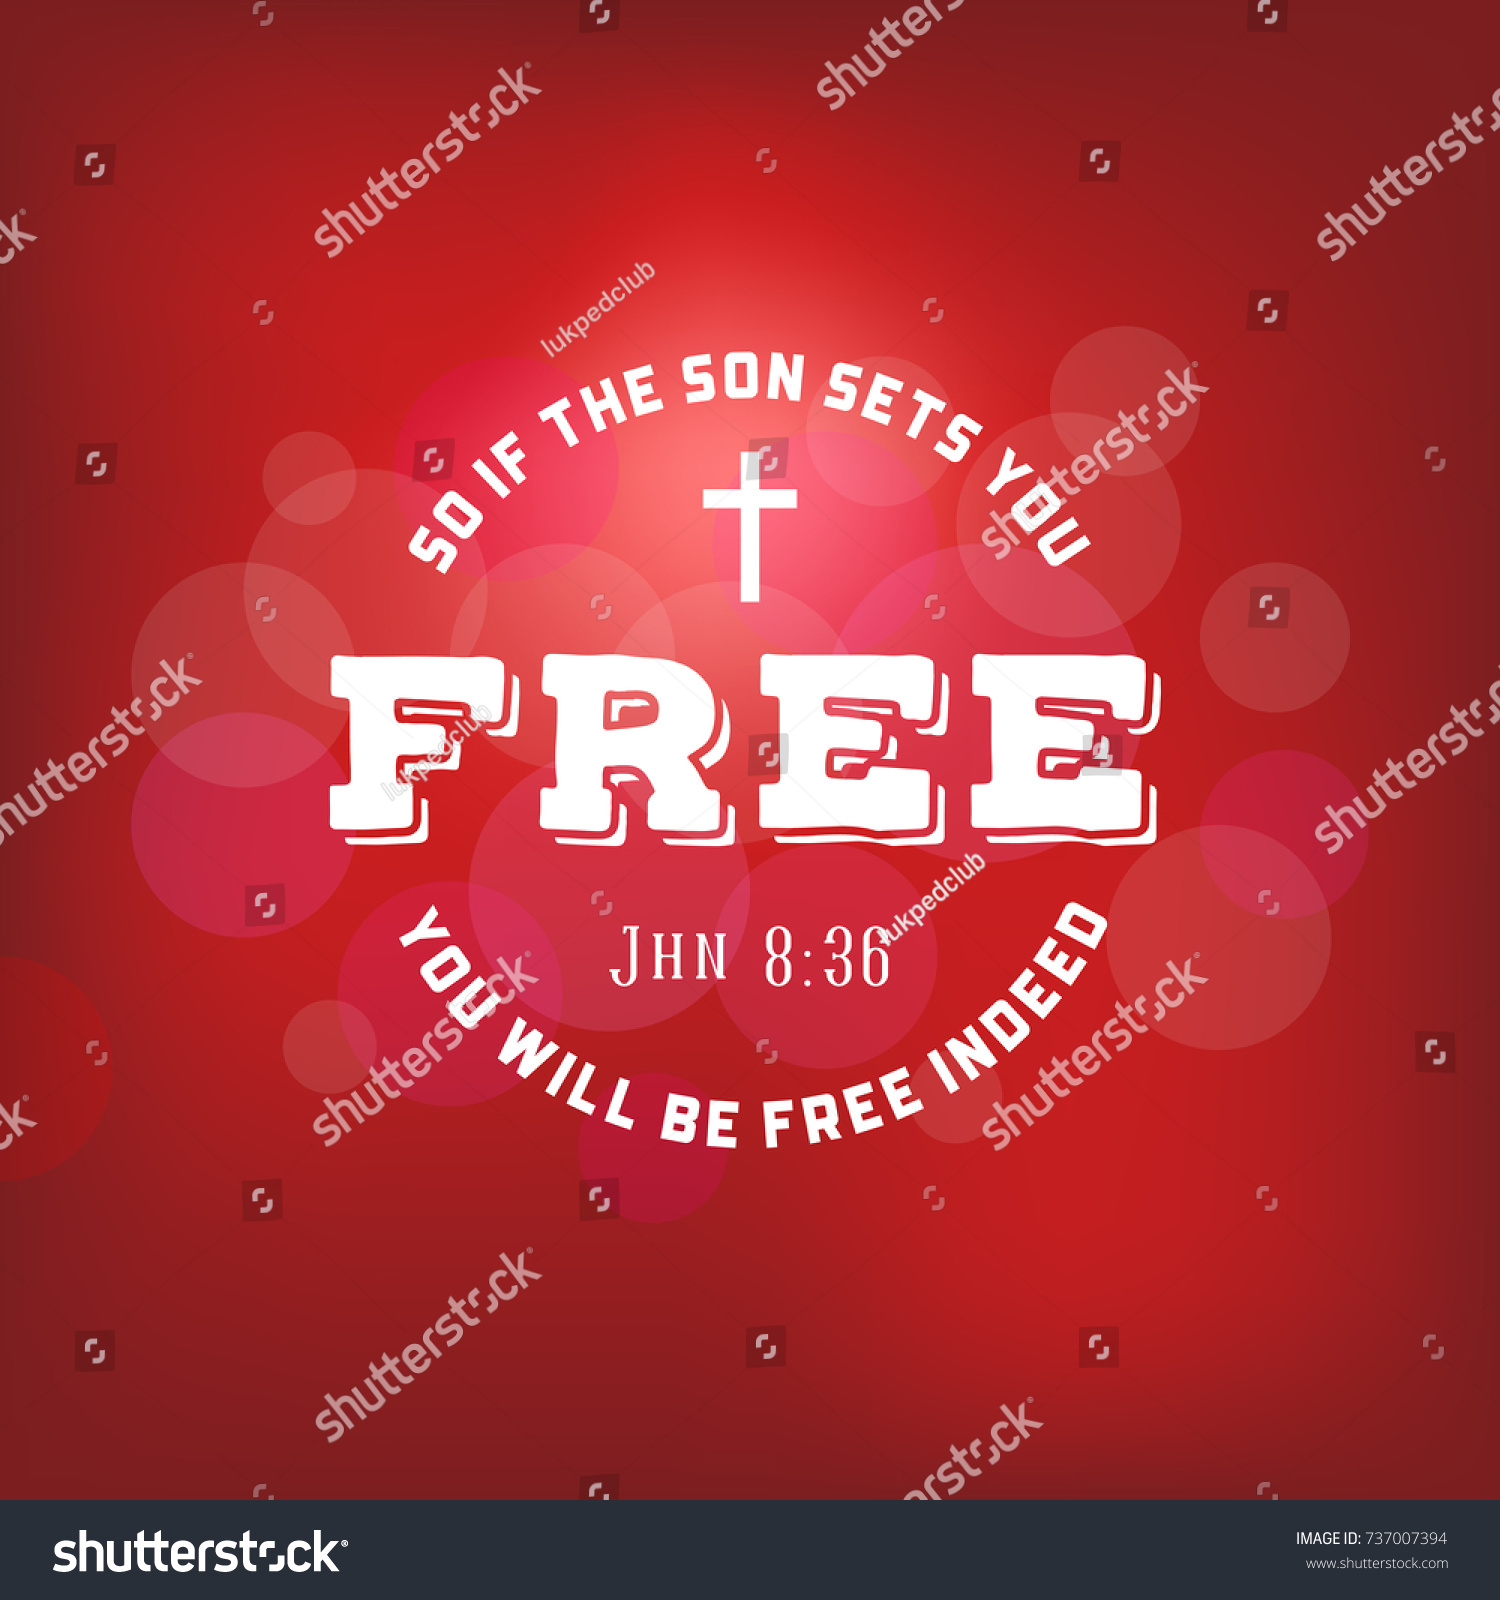 Bible Verses New Testament Son Sets Stock Vector (Royalty Free ...